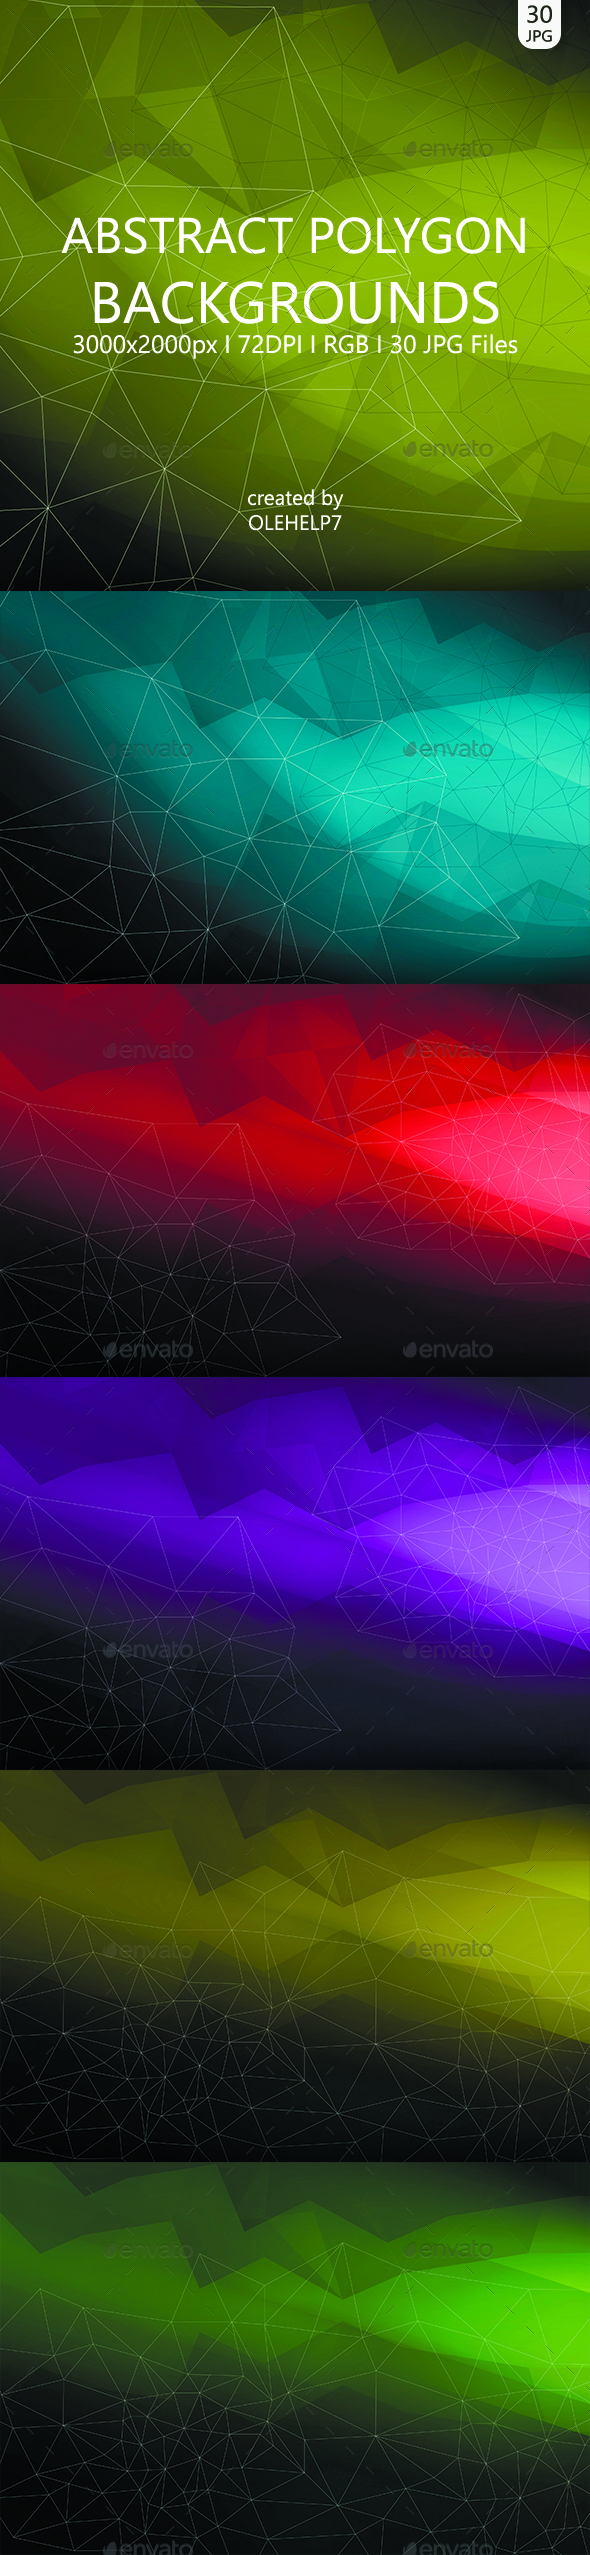 Abstract Polygon 30 Backgrounds